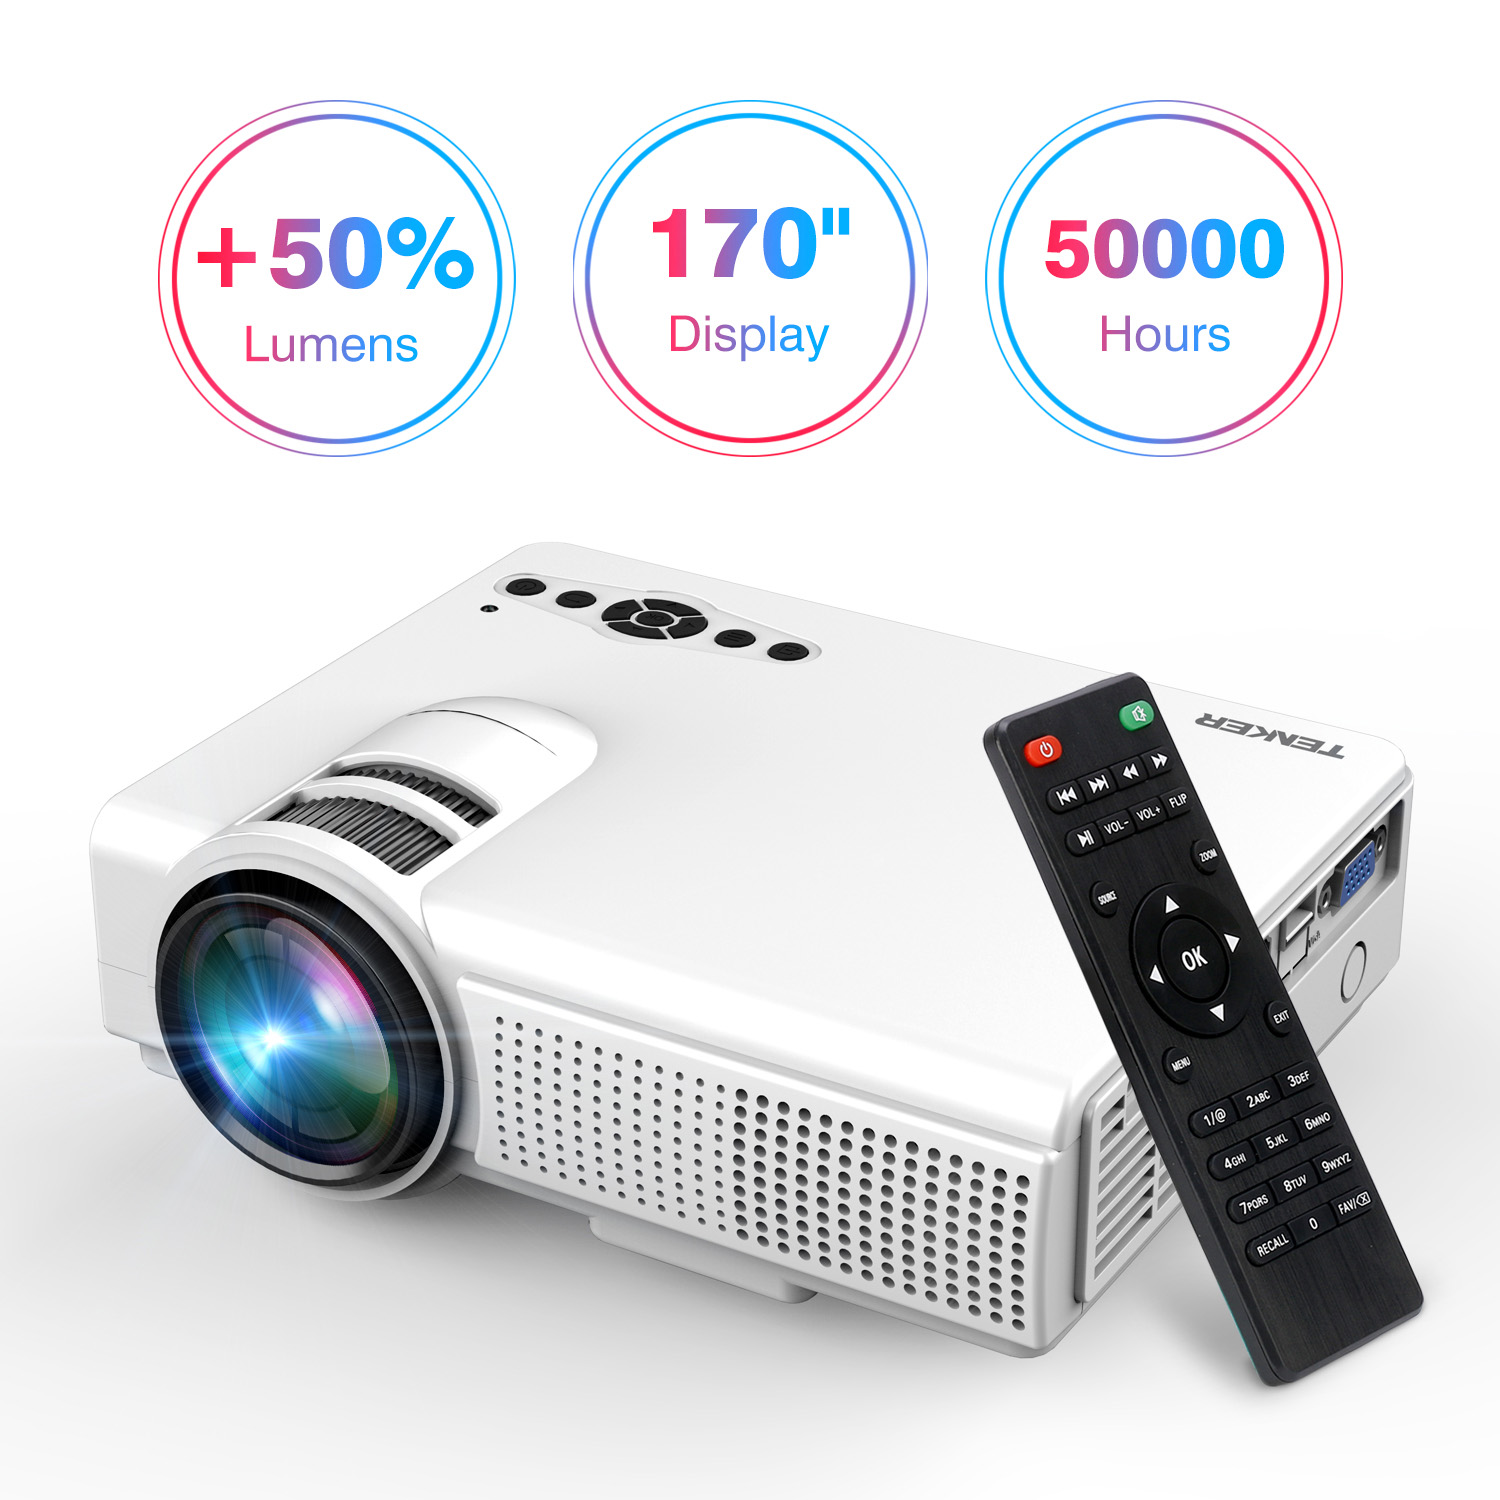 Spot Led Telecommande Projector Upgraded Lumens Tenker Mini Projector With 170